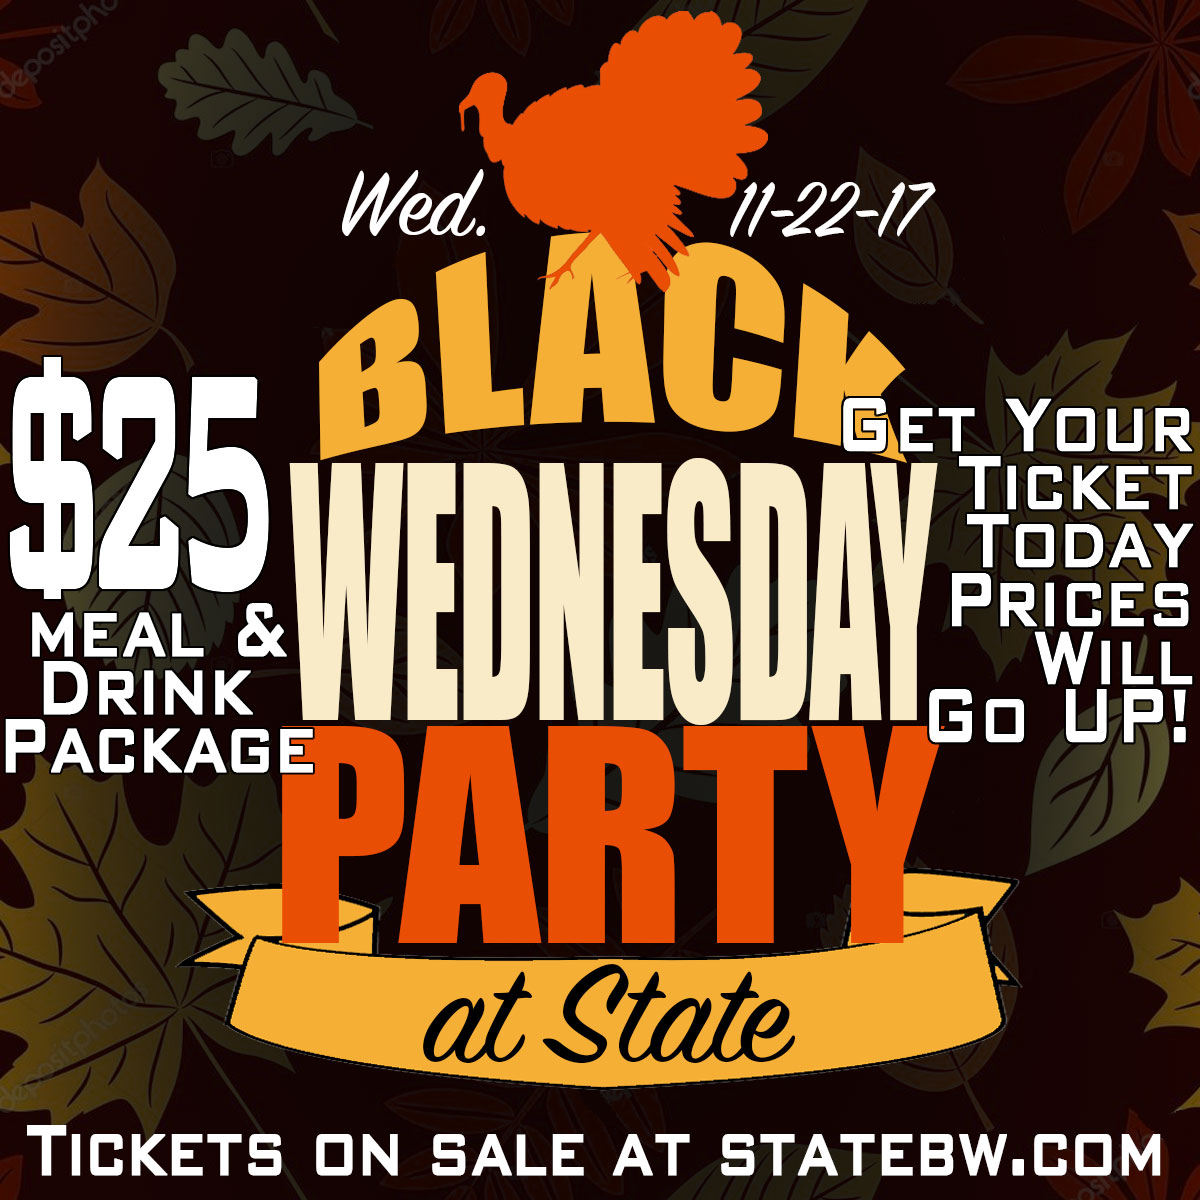 State Black Wednesday Party - Meal and Drink Package includes: Calls, Wells, Miller Lite drafts, Coors Light Drafts, Appetizer Buffet!